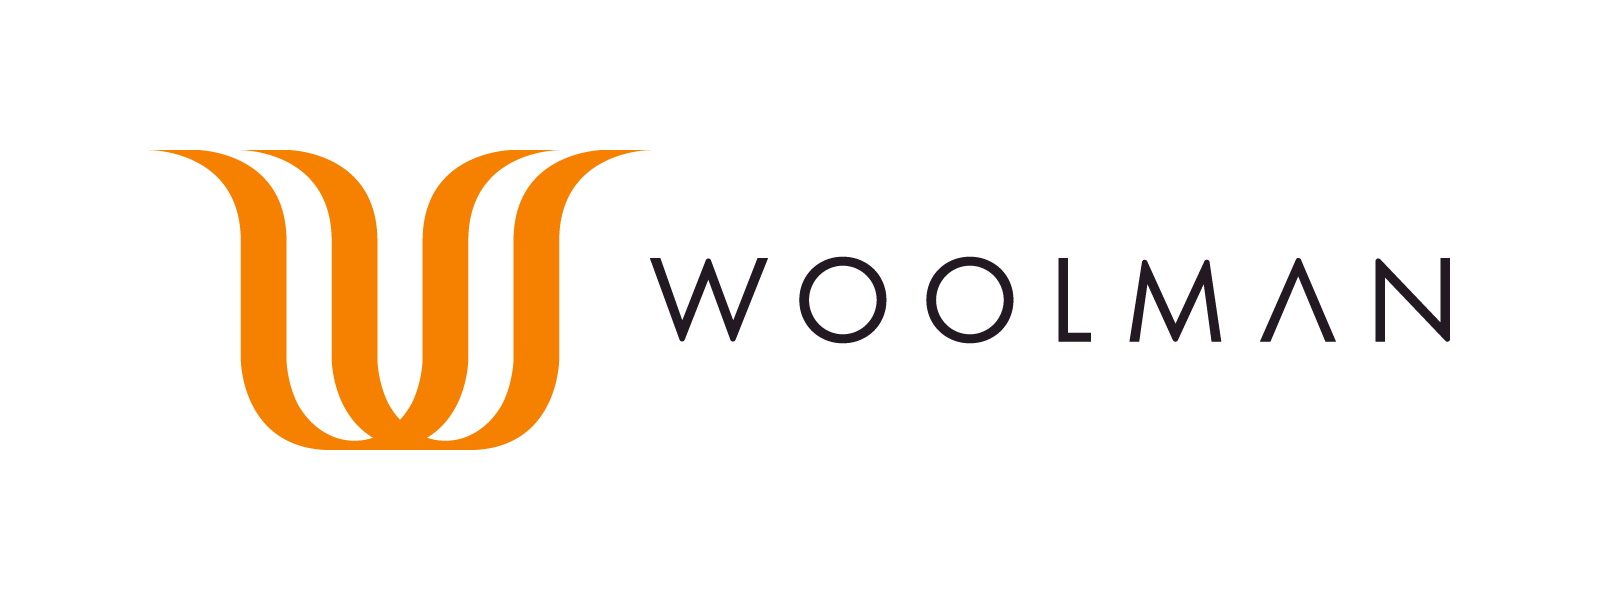 Woolman-logo-horizontal-orange-black